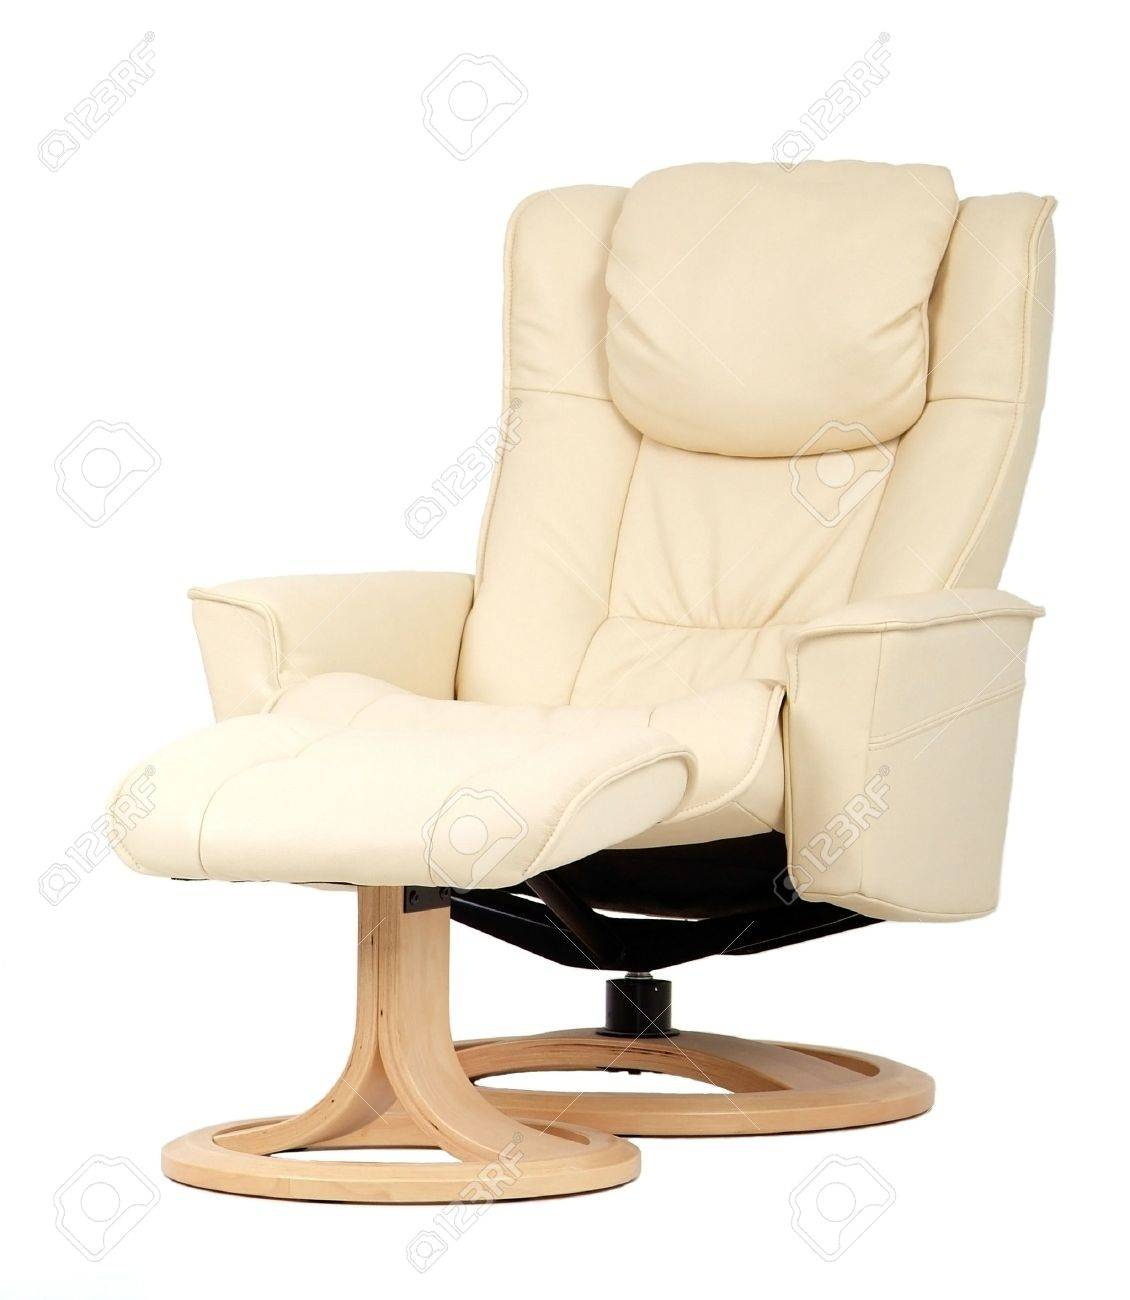 Outstanding Off White Leather Recliner Chair With Matching Footstool Perspective Machost Co Dining Chair Design Ideas Machostcouk